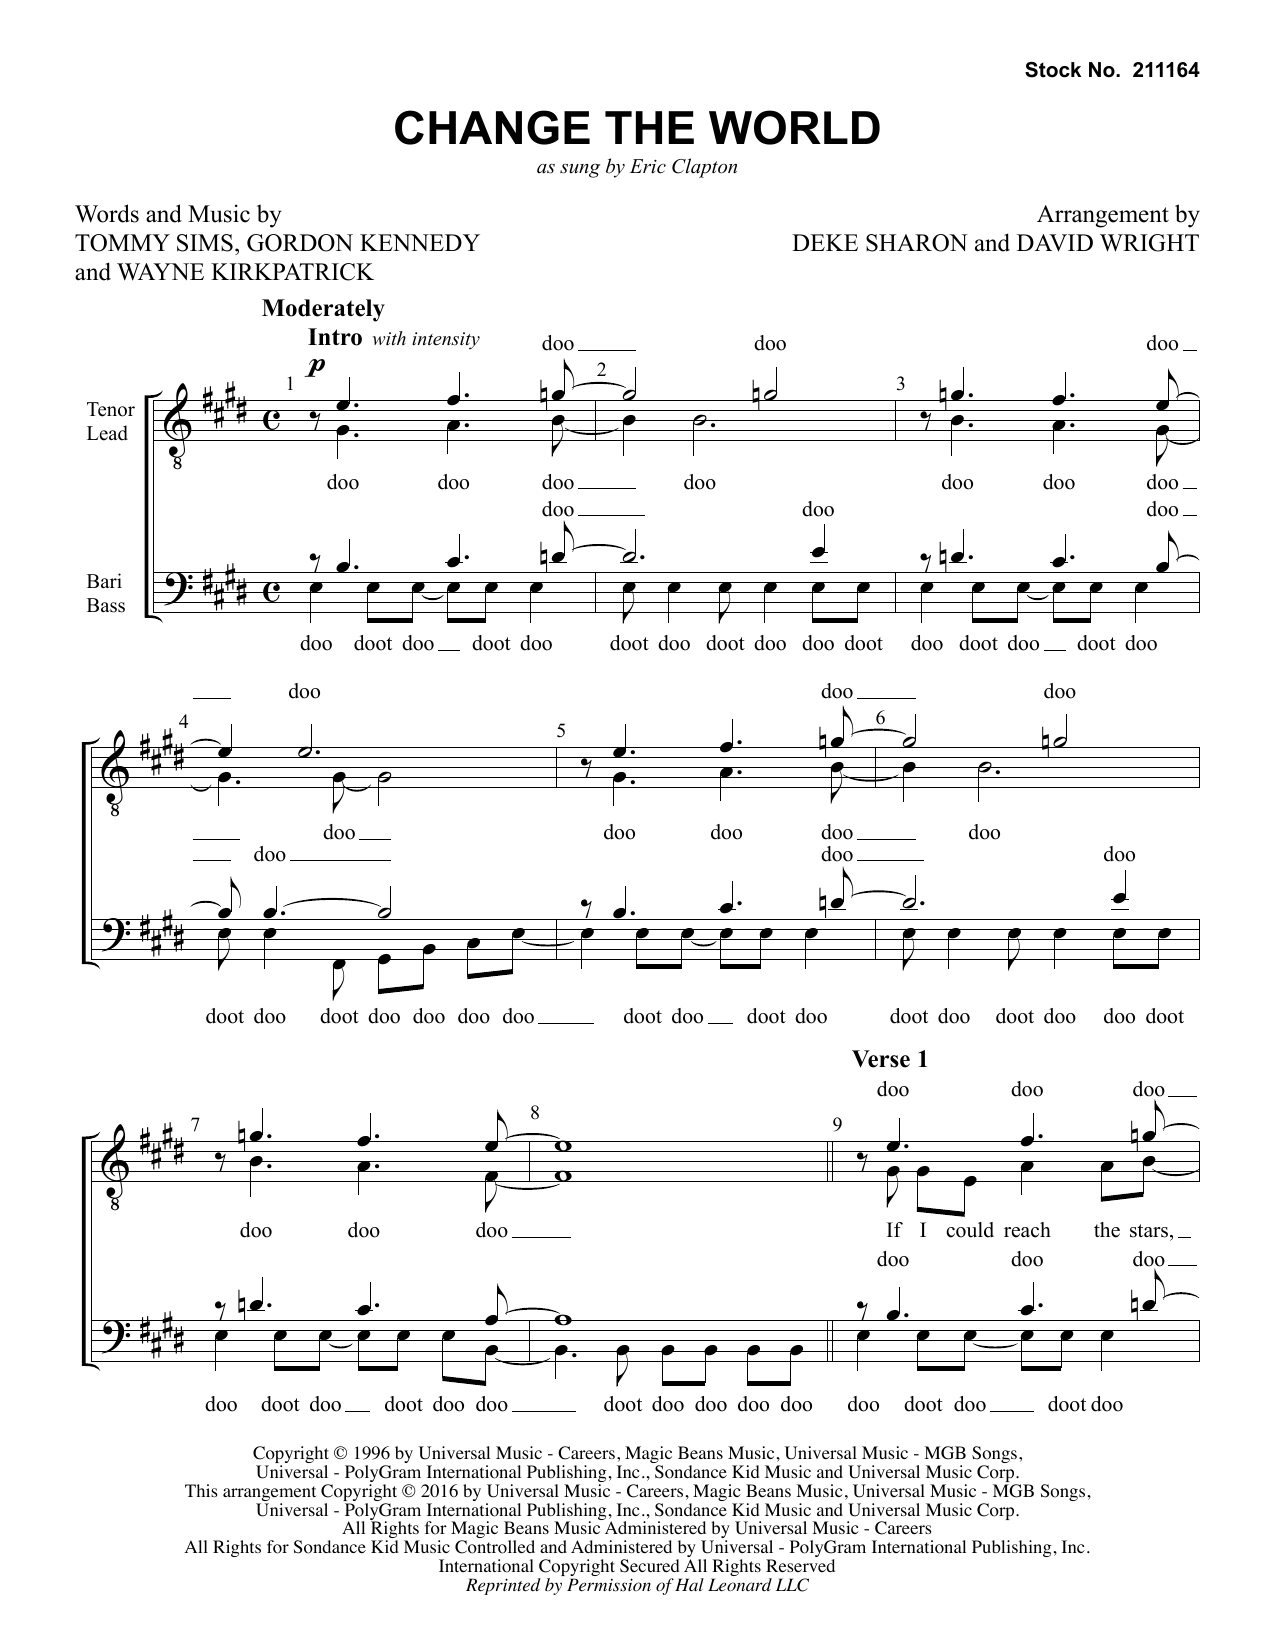 Change The World (arr. Deke Sharon, David Wright) Partition Digitale